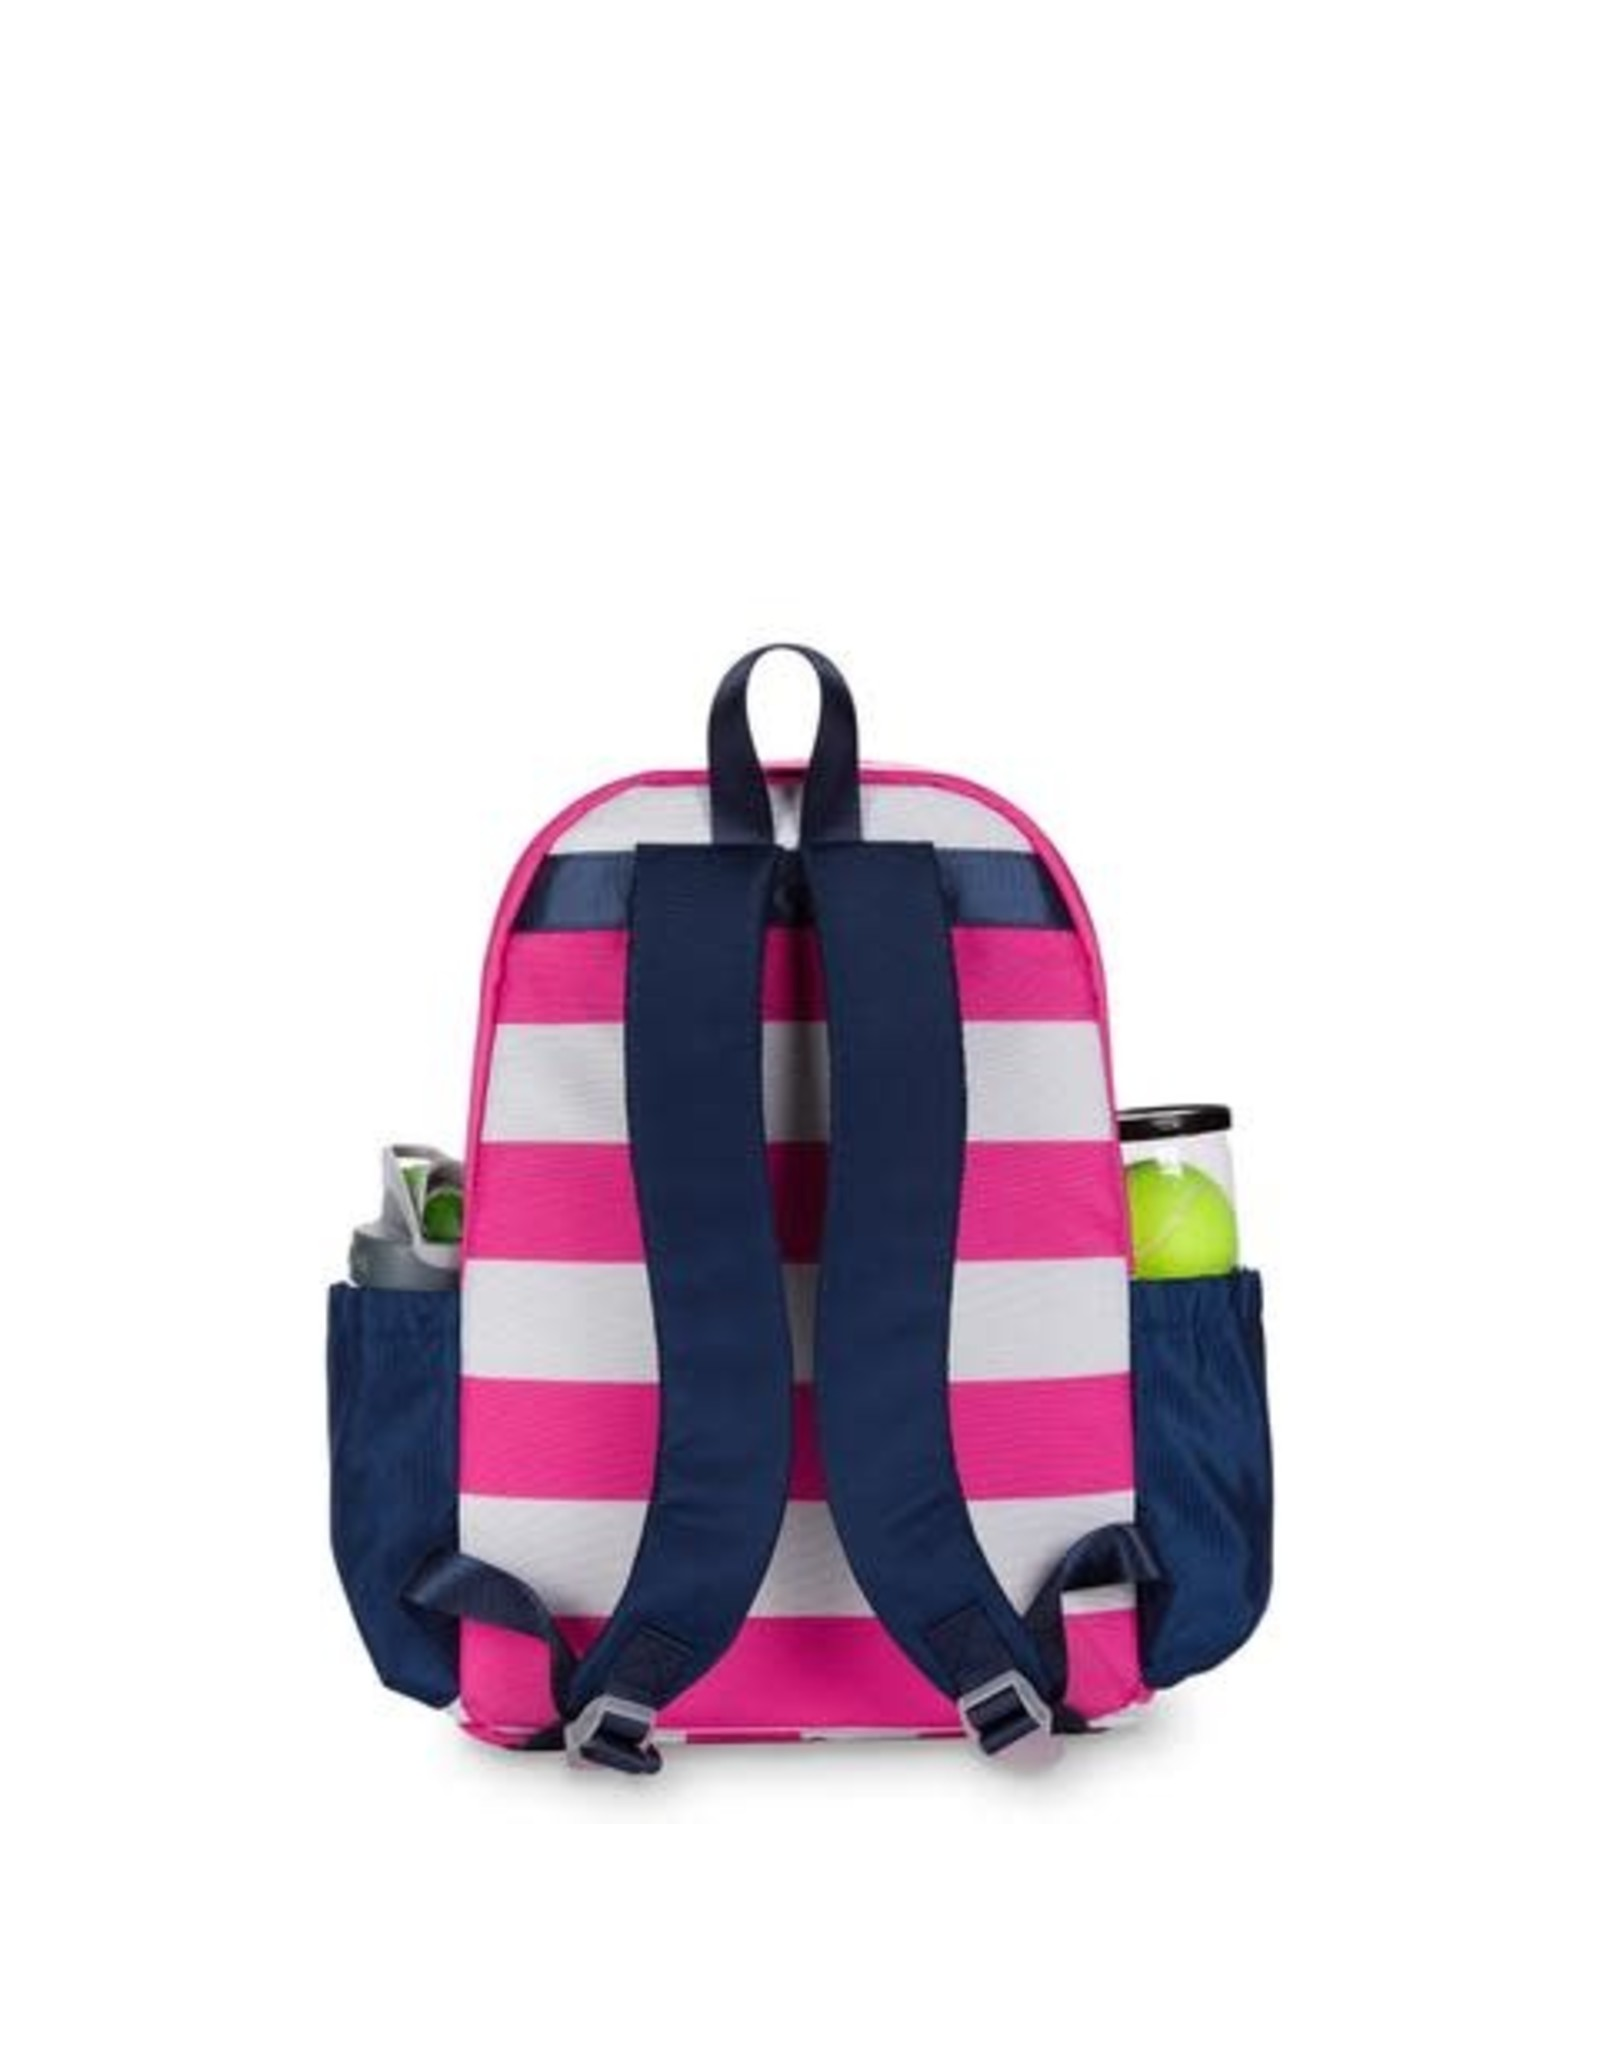 Ame & Lulu Big Love Tennis Backpack Candy